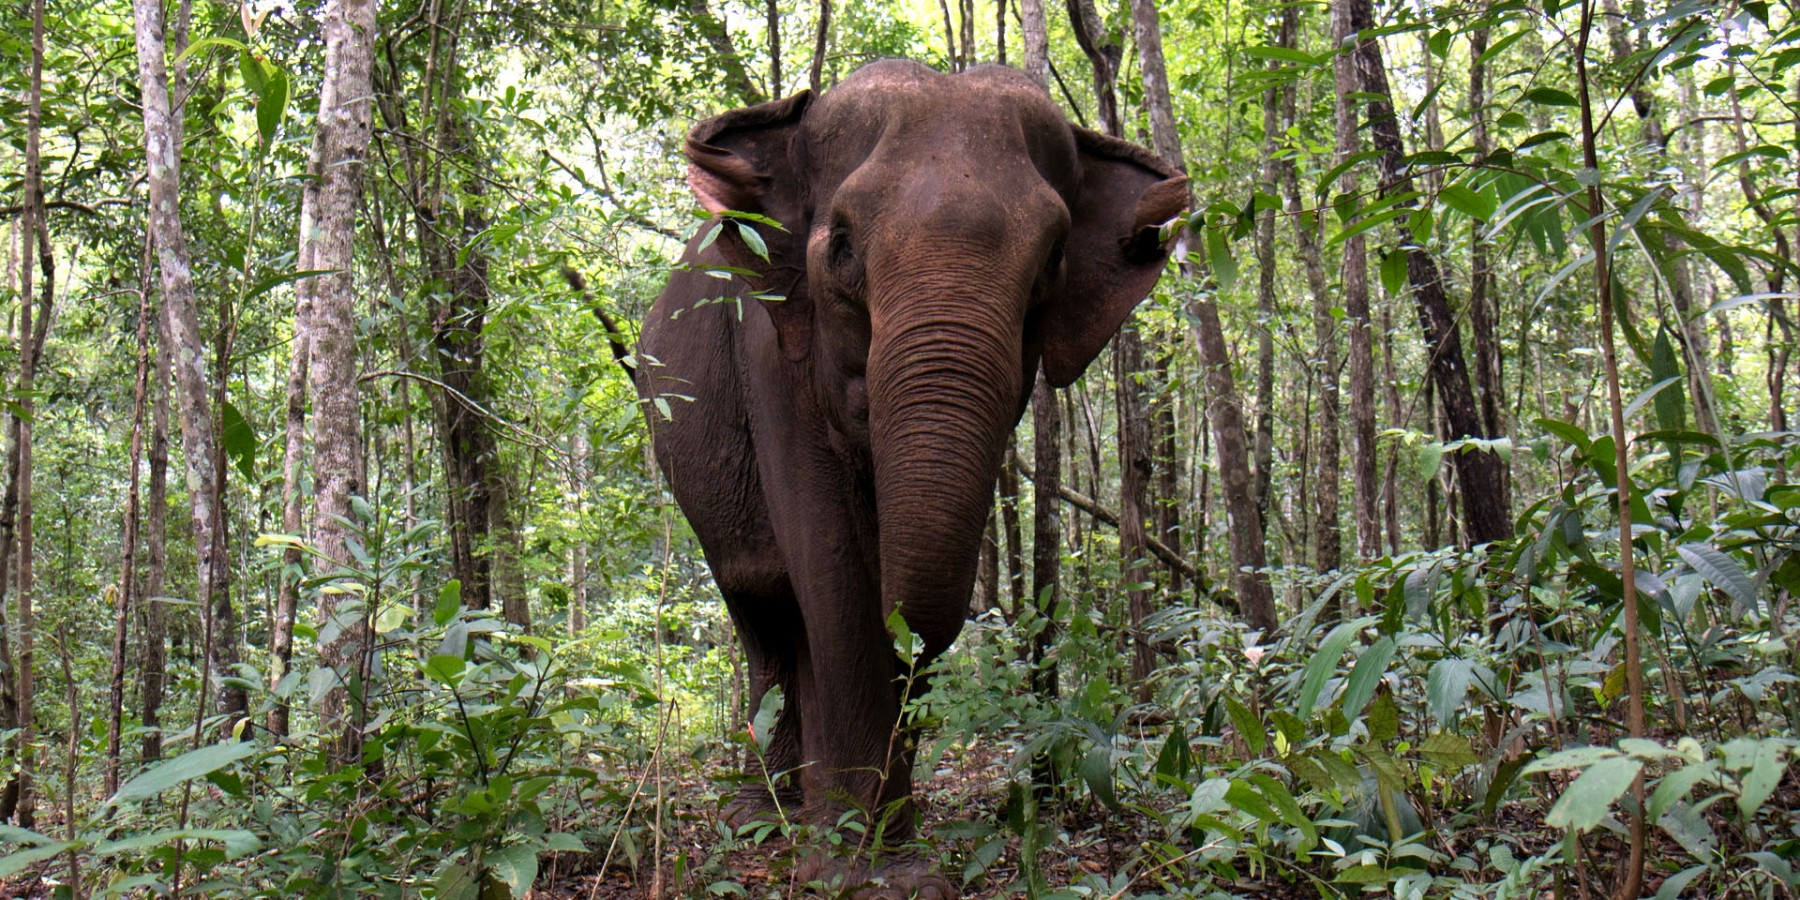 An elephant in the forest at Elephant Valley Project (EVP), Cambodia